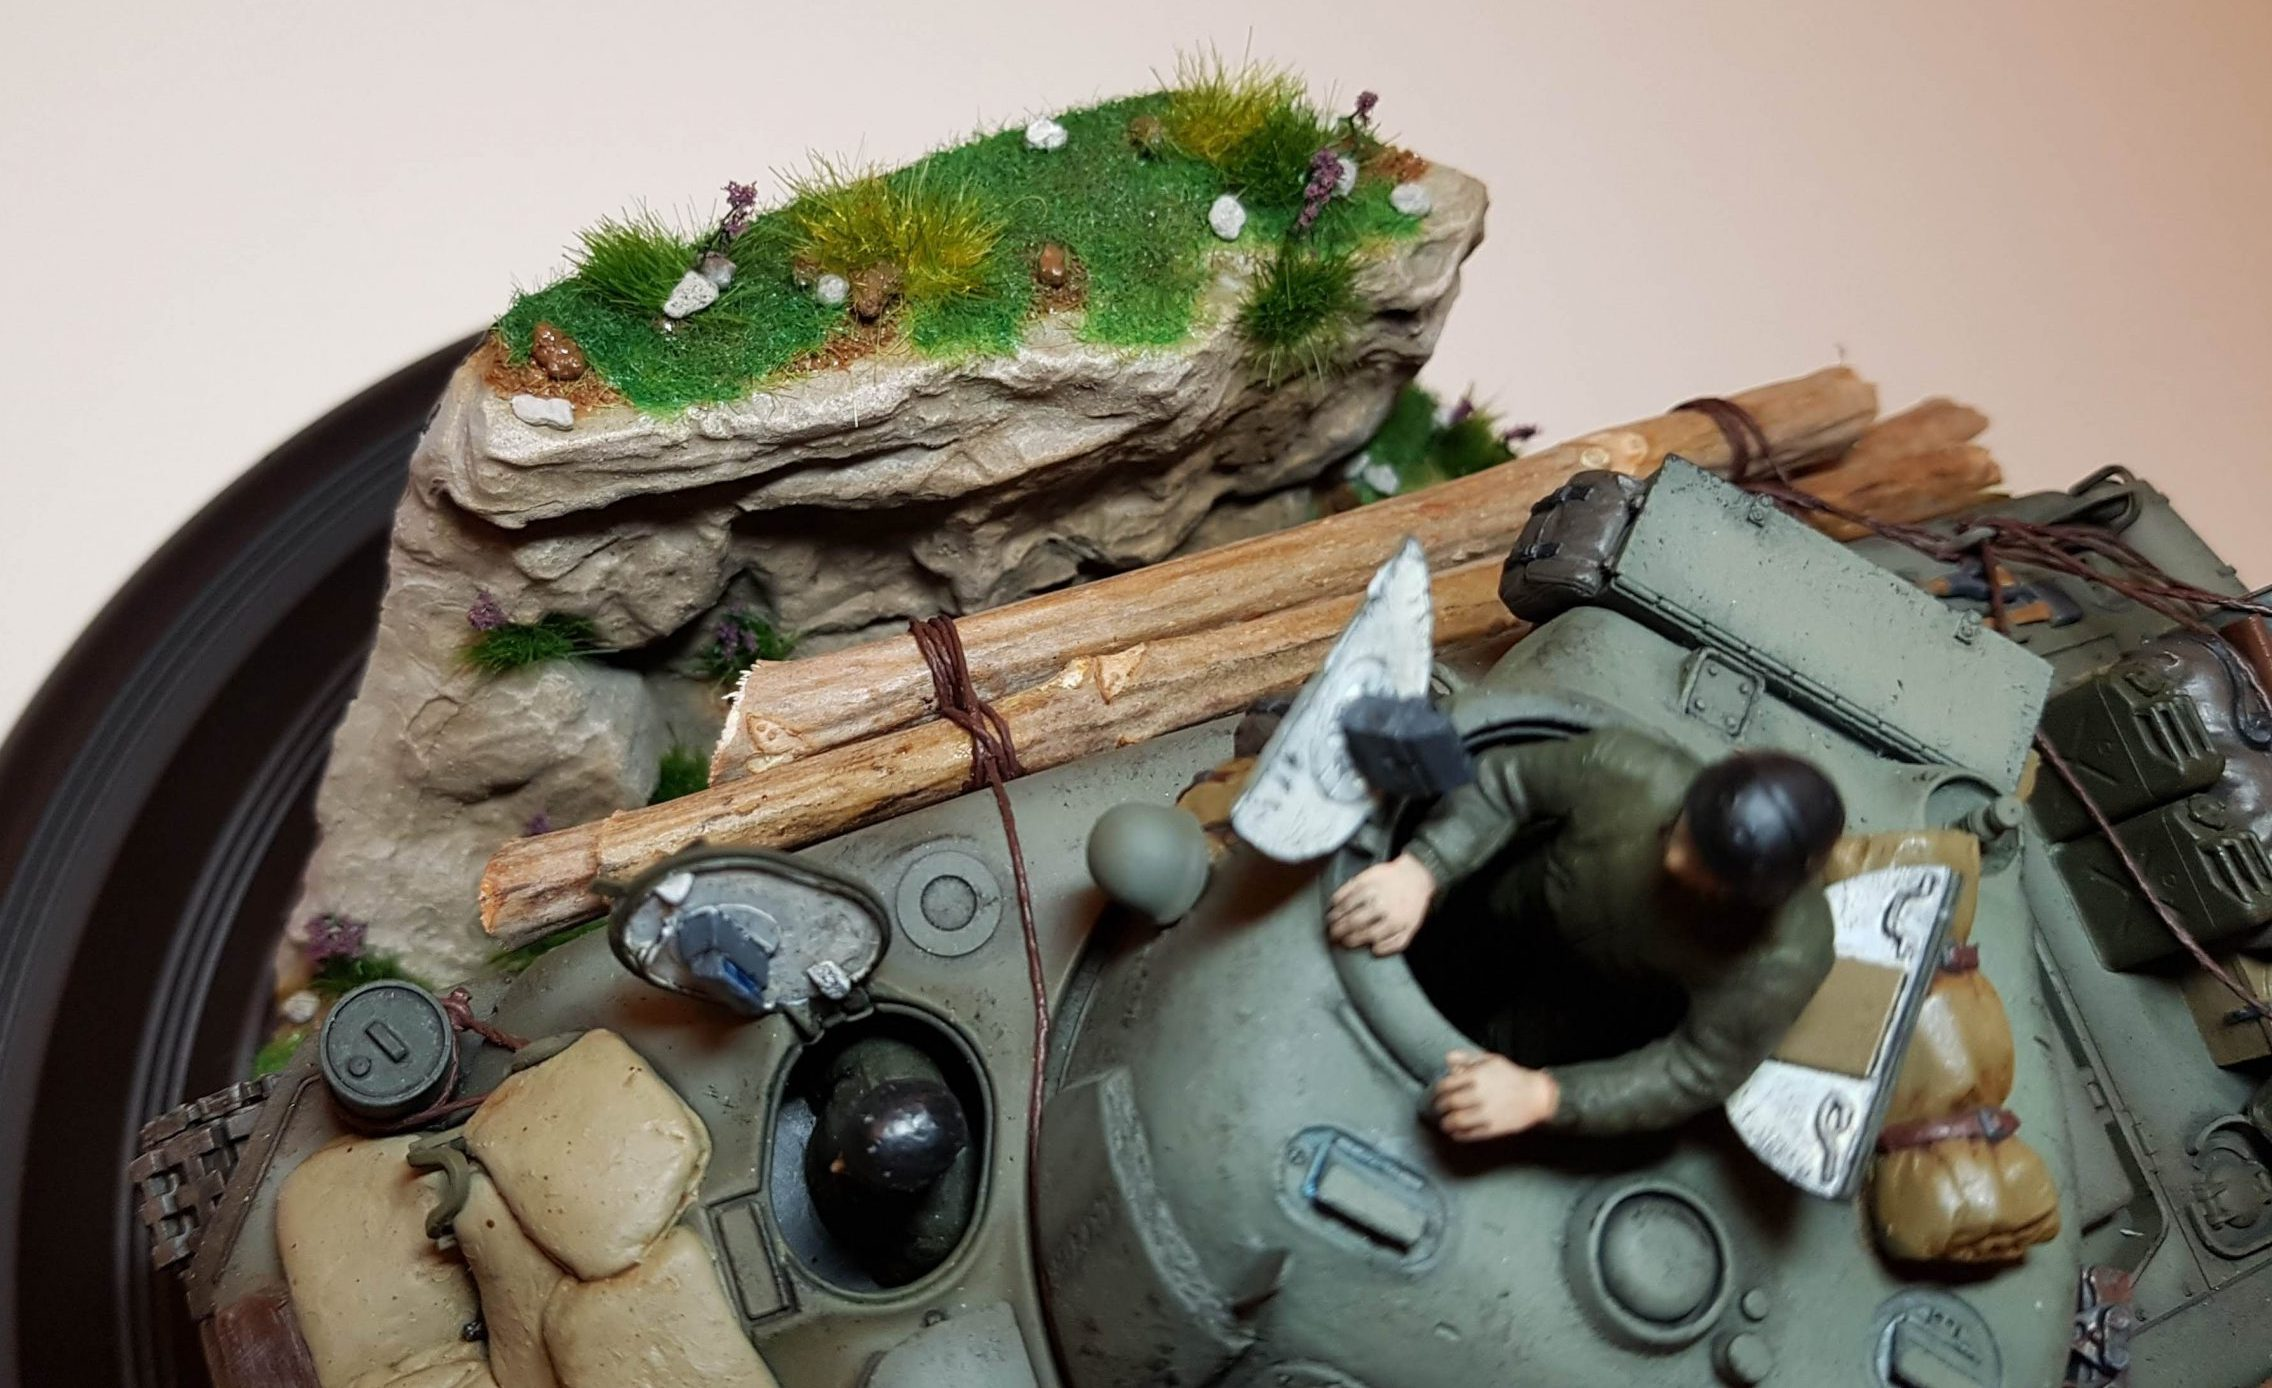 Kit-bashed - M4 Sherman (WW2) - Groundwork Closeup - 1/35 Scale - Built By Wright Built - Tamiya, Italeri, Formations, Others, Sculpted